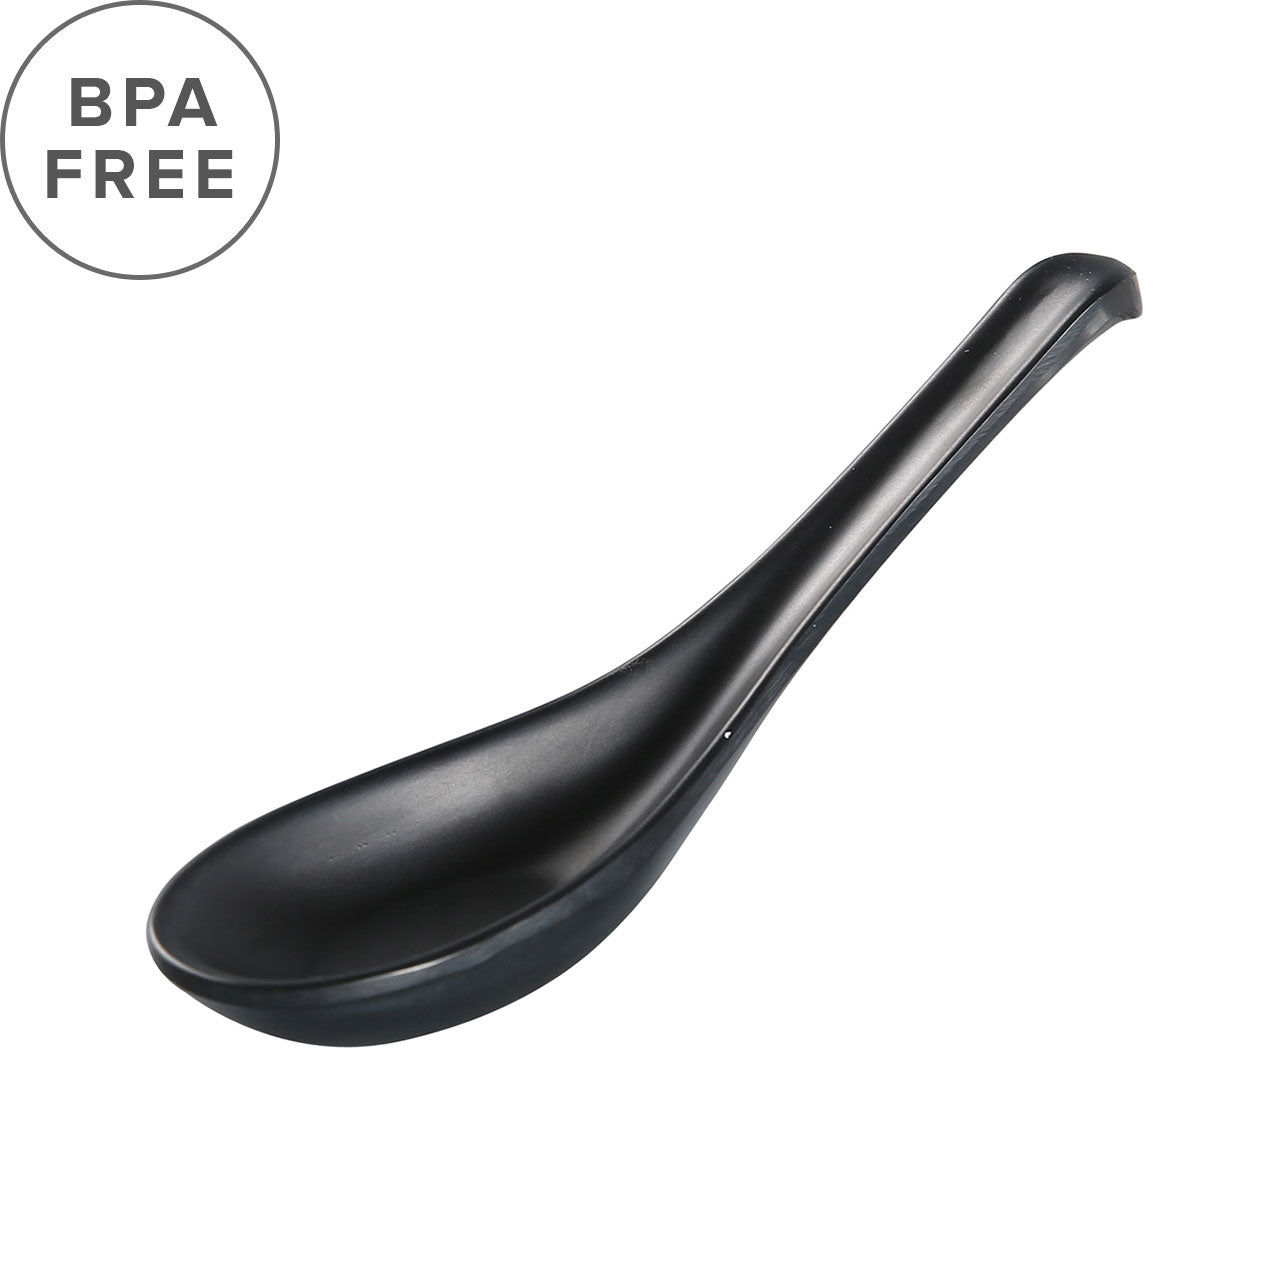 "Melamine Black Matte Renge Ramen Spoon 5.5"" Length"